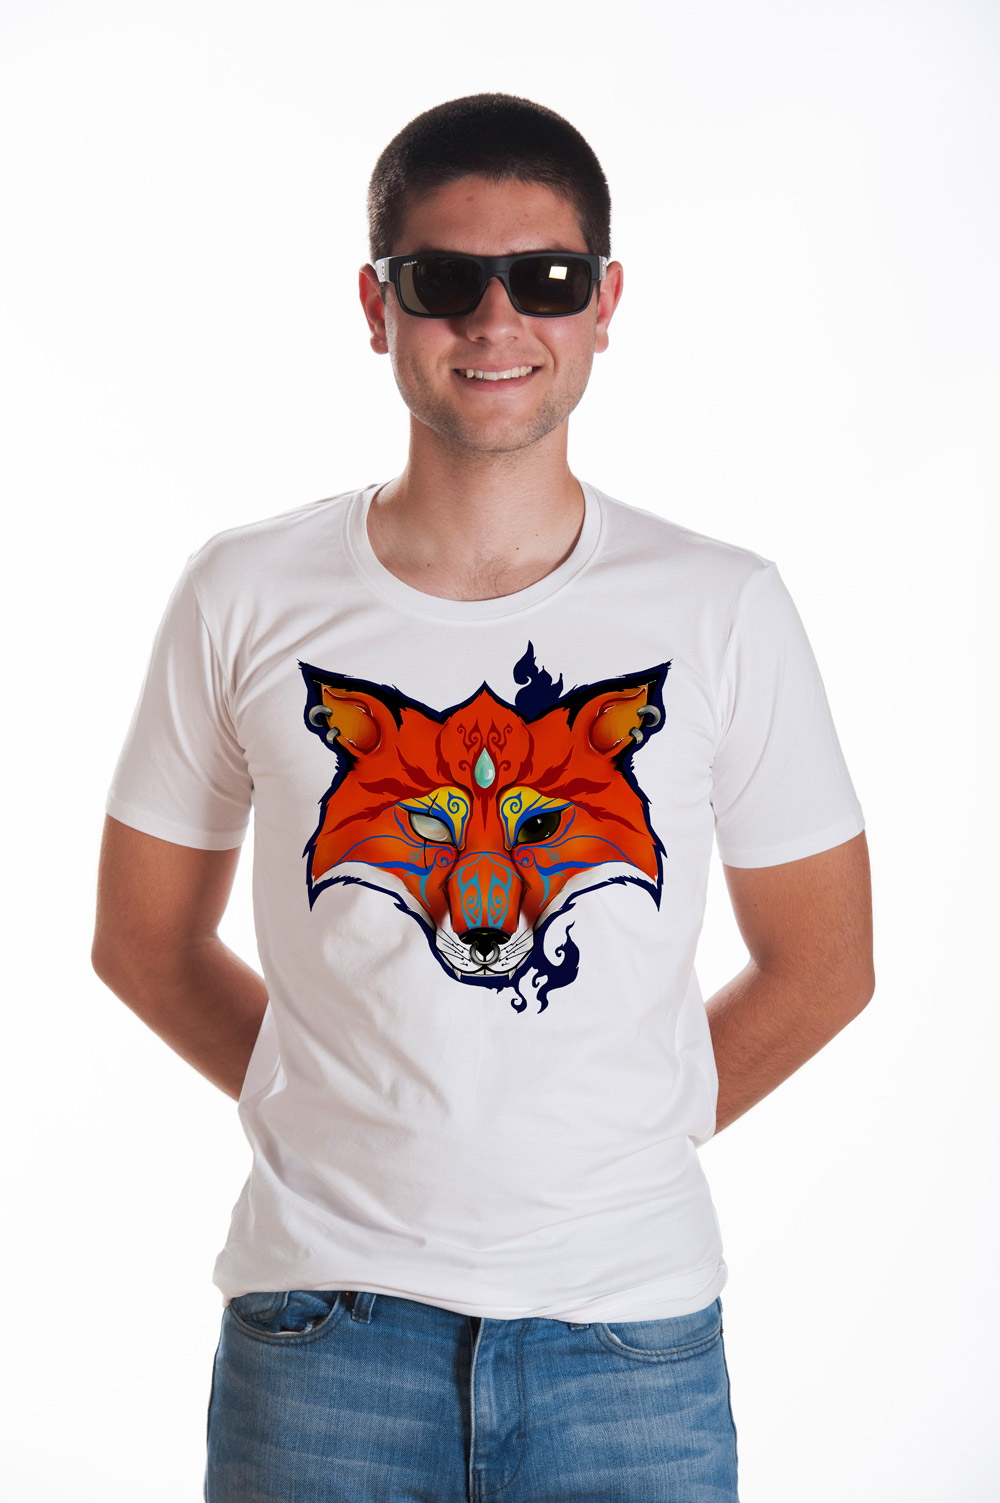 Fox Head T shirt | Mythic Tee | Fox Tshirt | Unisex Fox head Shirt